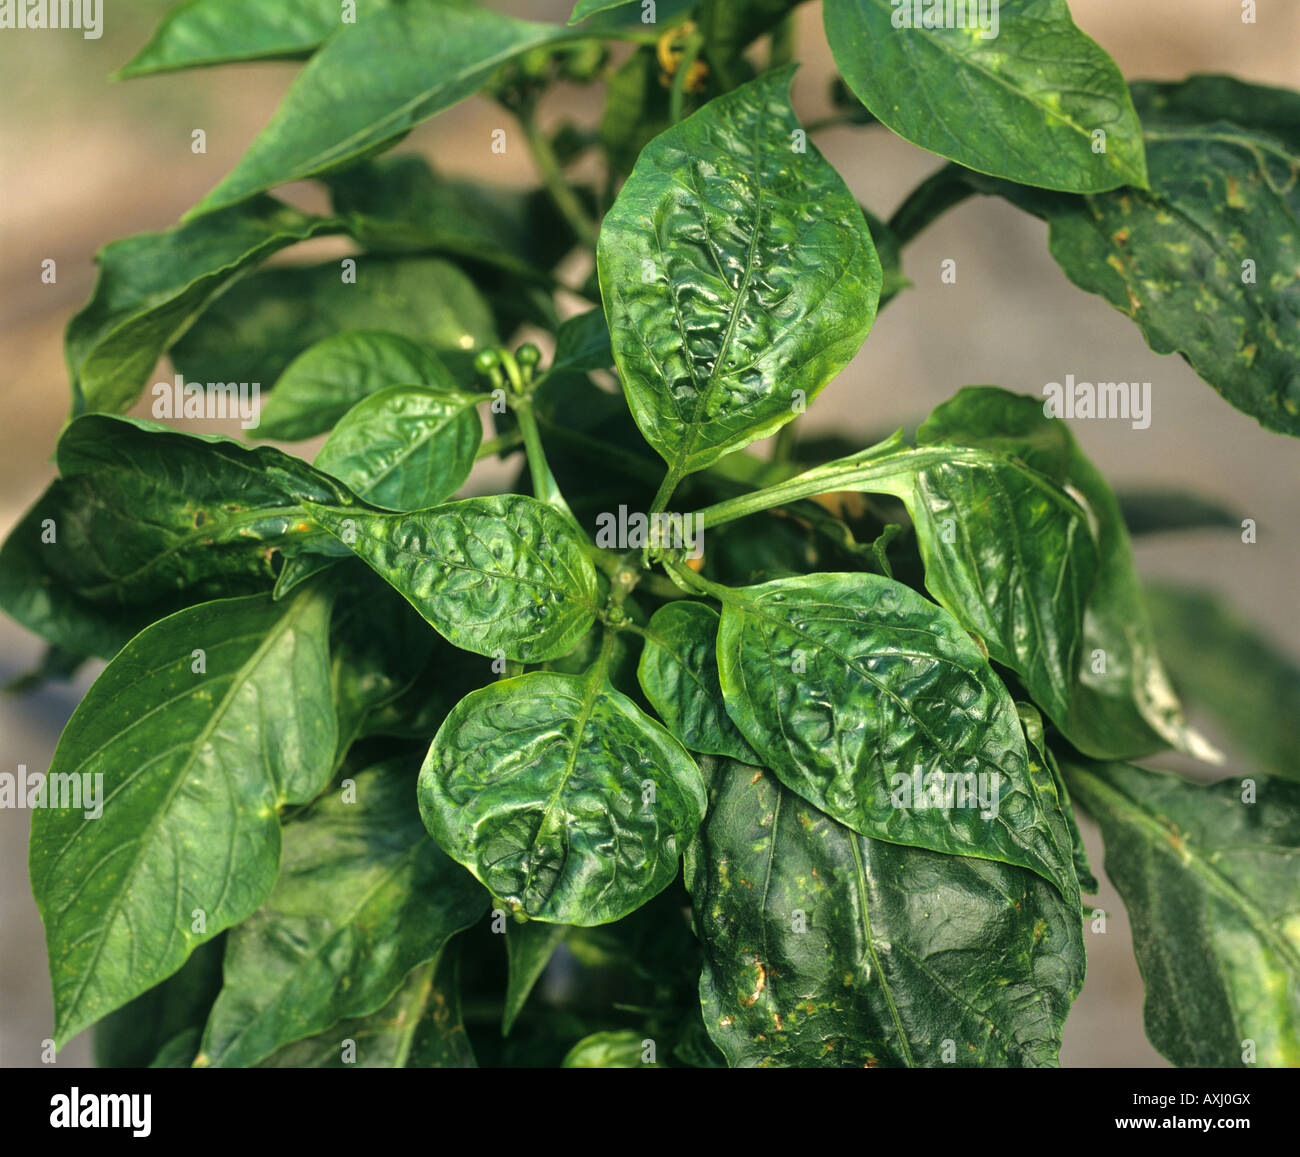 Cucumber Mosaic Virus Cmv Distortion Of The Leaves Of A